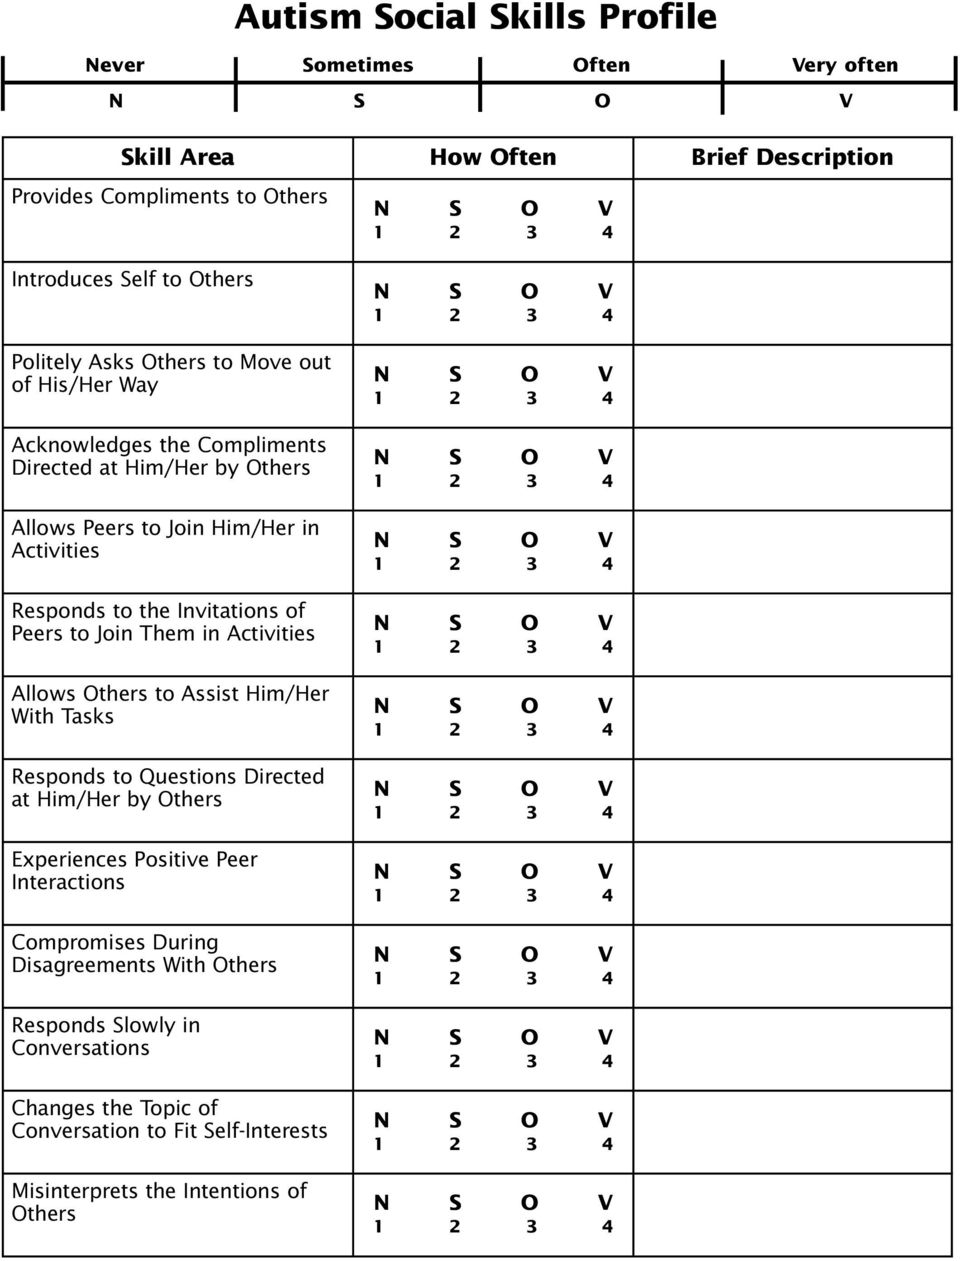 Autism Social Skills Profile  Pdf Free Download inside Autism Social Skills Profile Scoring